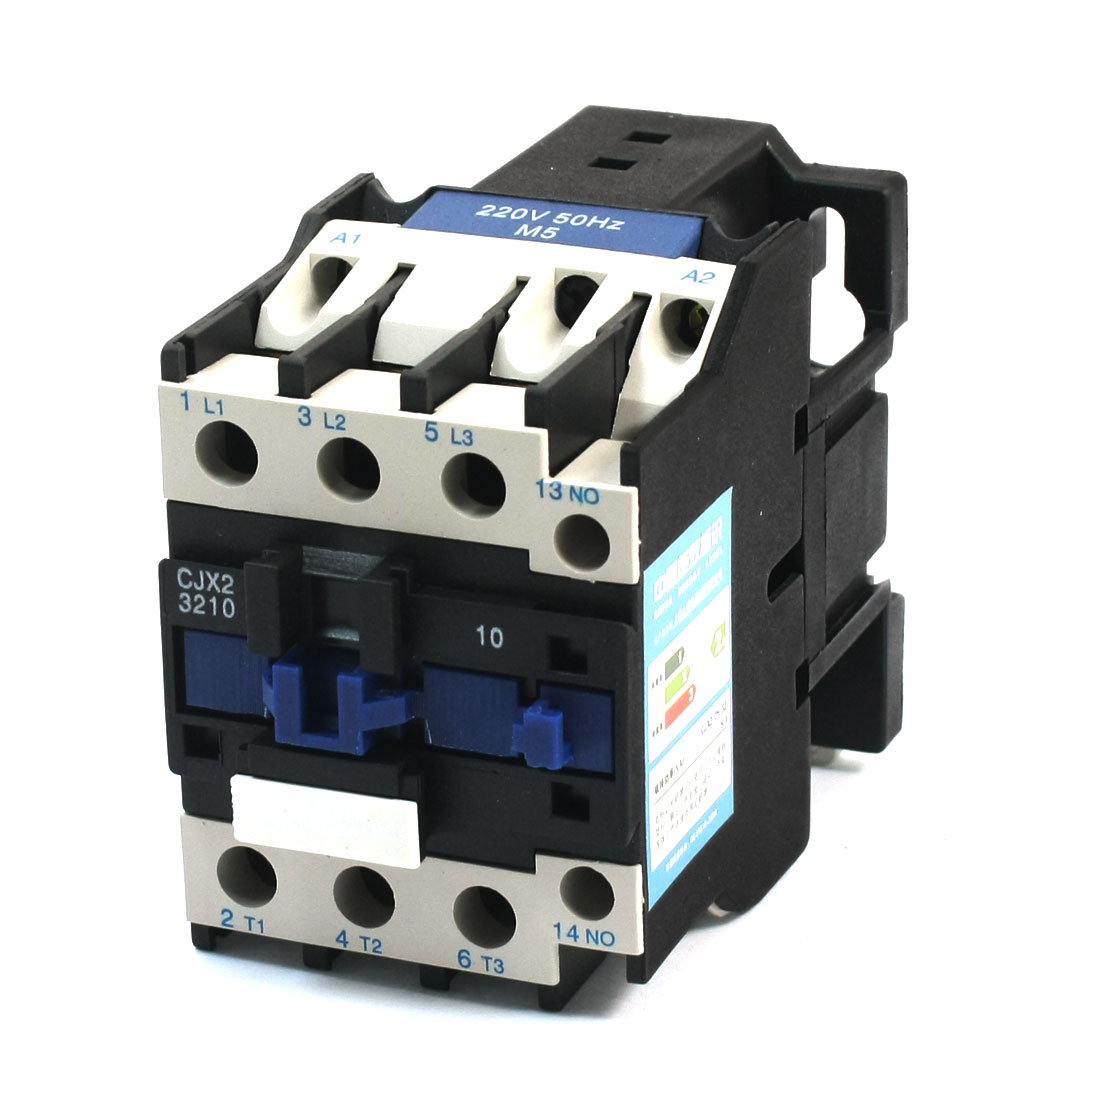 CJX2-3210 35mm DIN Rail Mount 3 Phase AC Contactor 220V Coil 50A